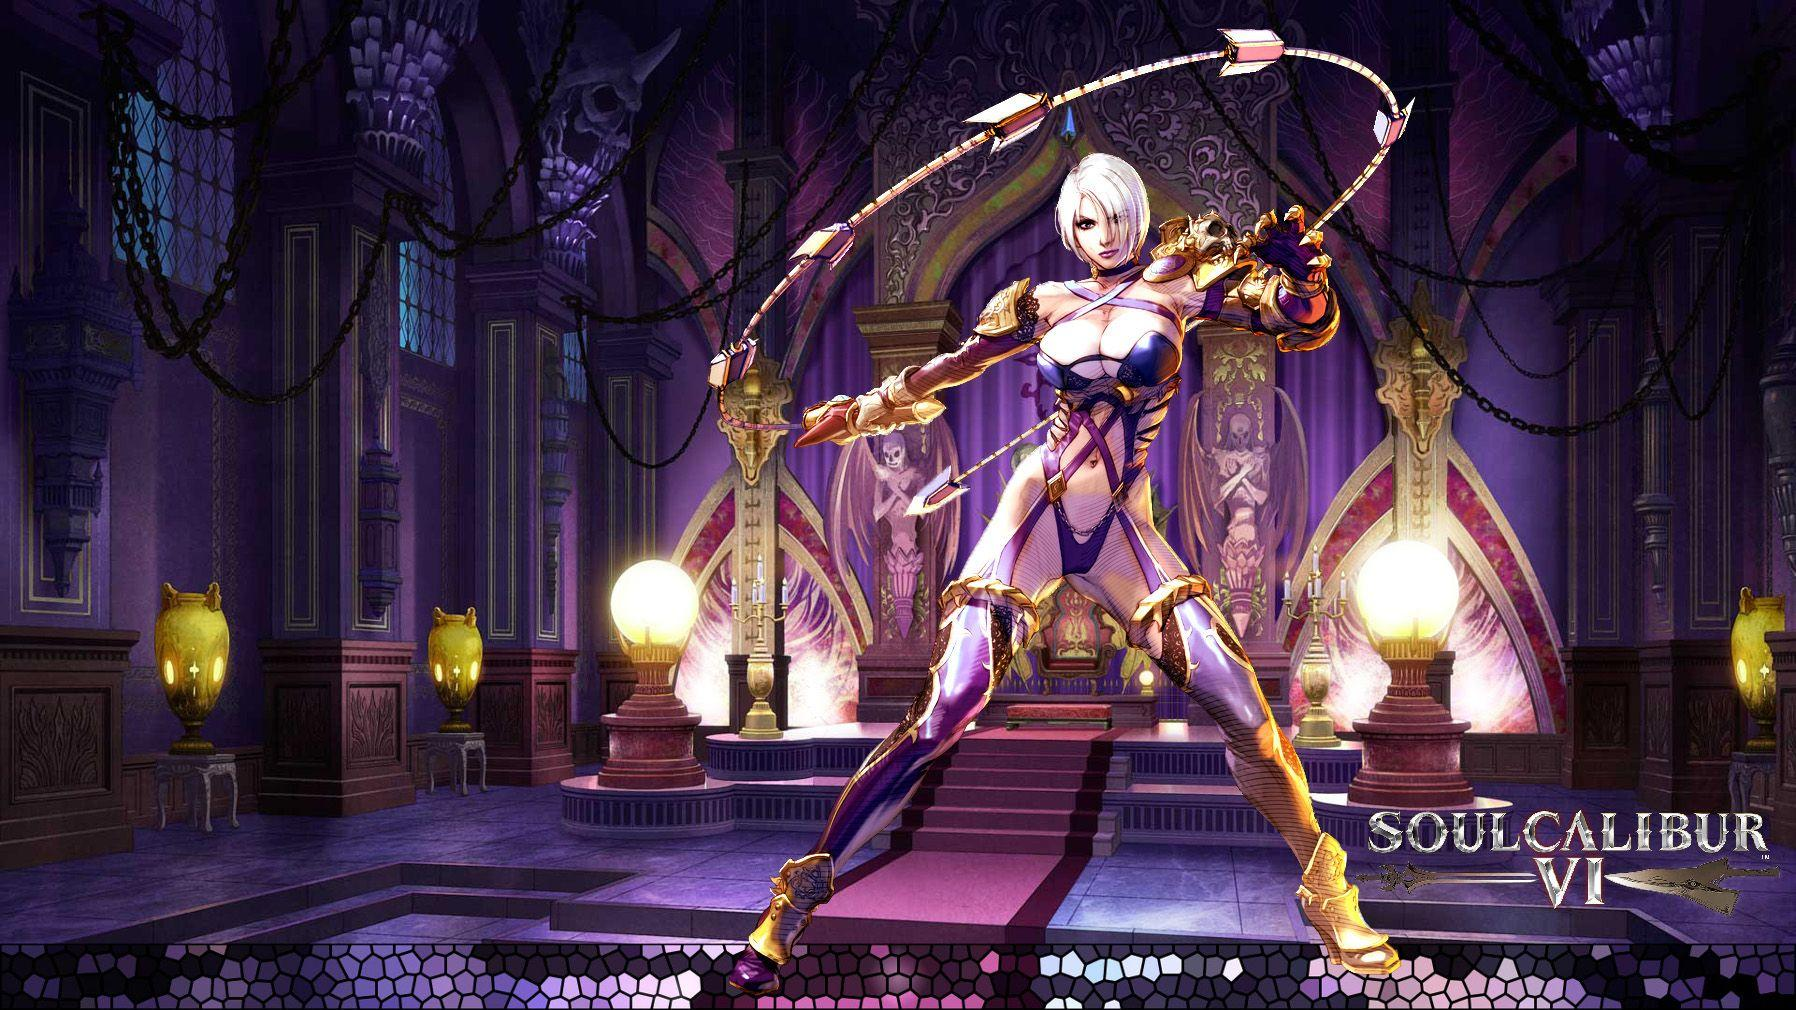 Soulcalibur VI Art/Wallpapers